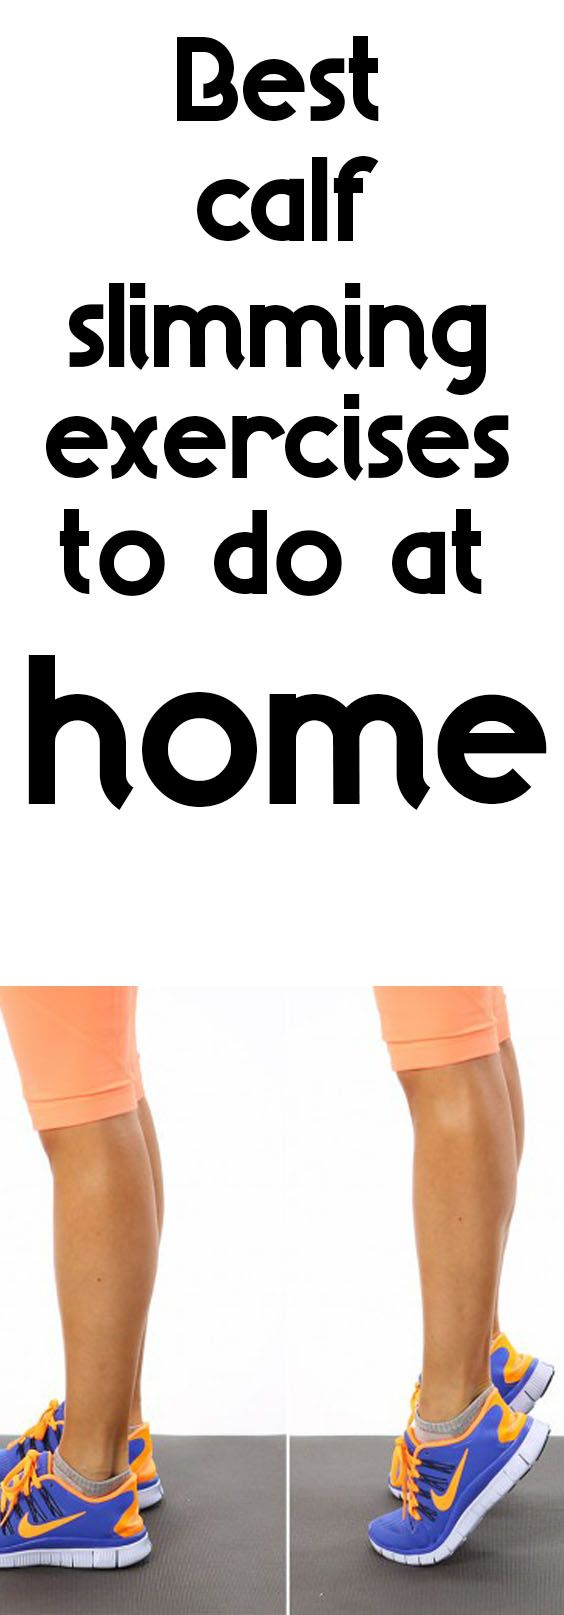 how to build calf muscle fast at home